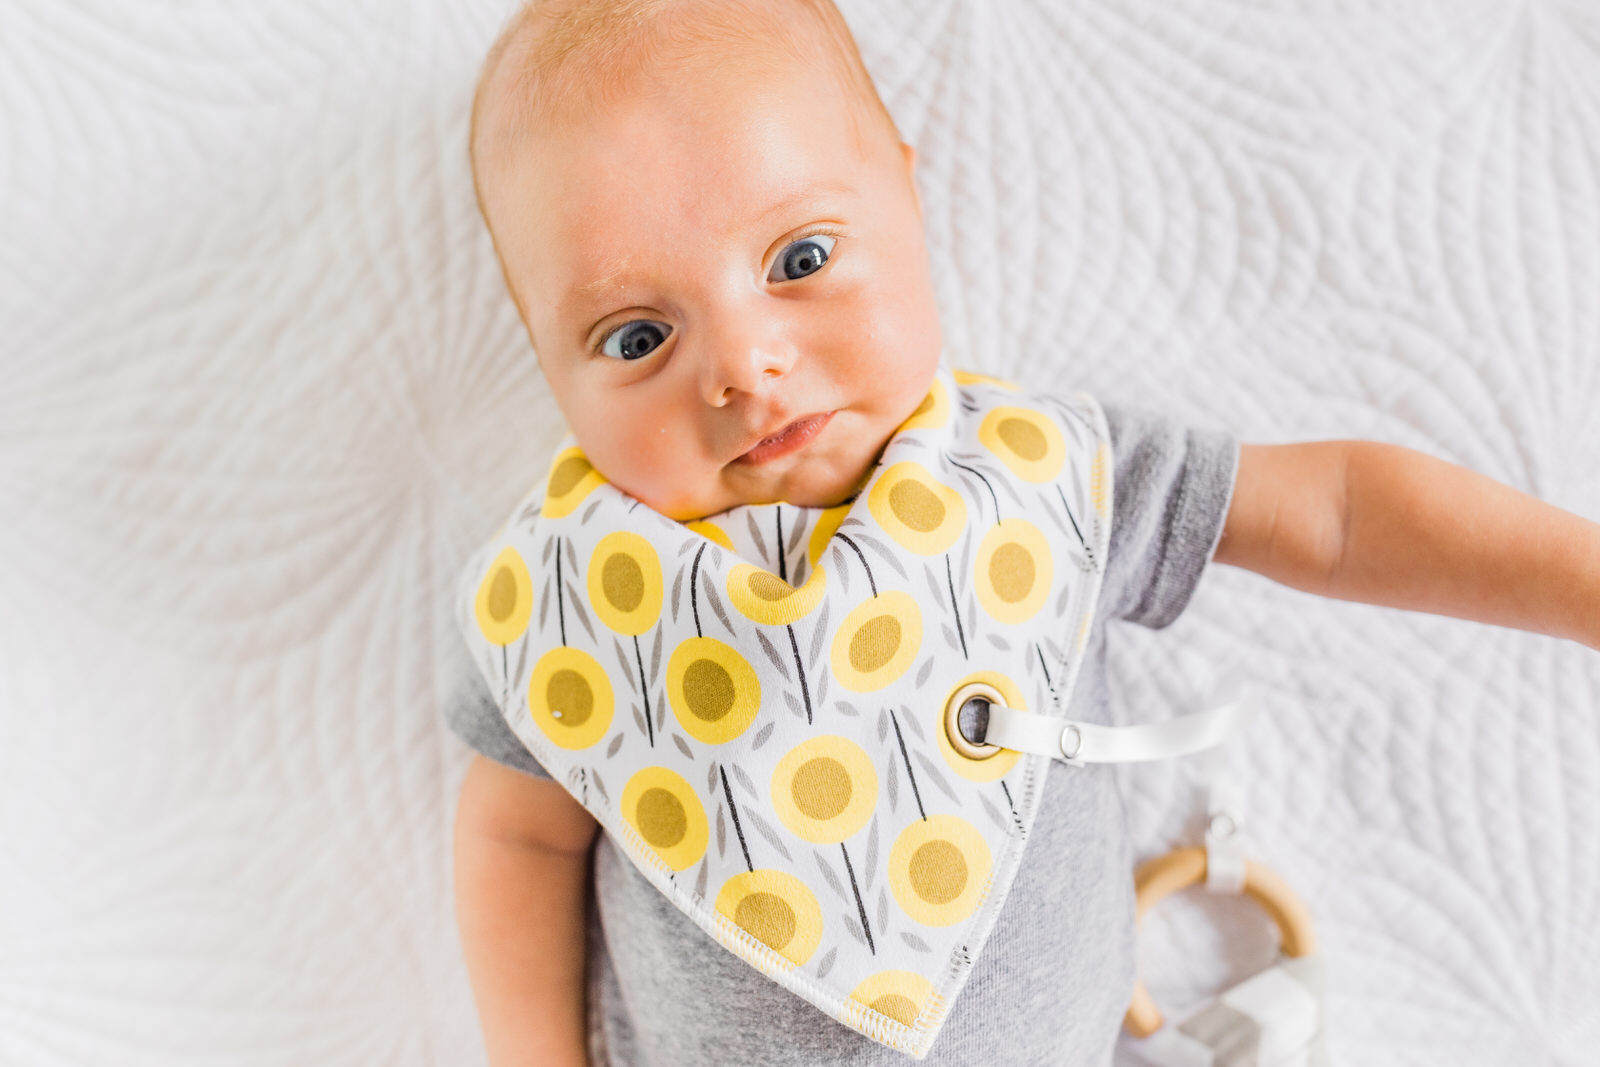 kids-clothes-small-business-baby-newborn-collaboration-7610.jpg